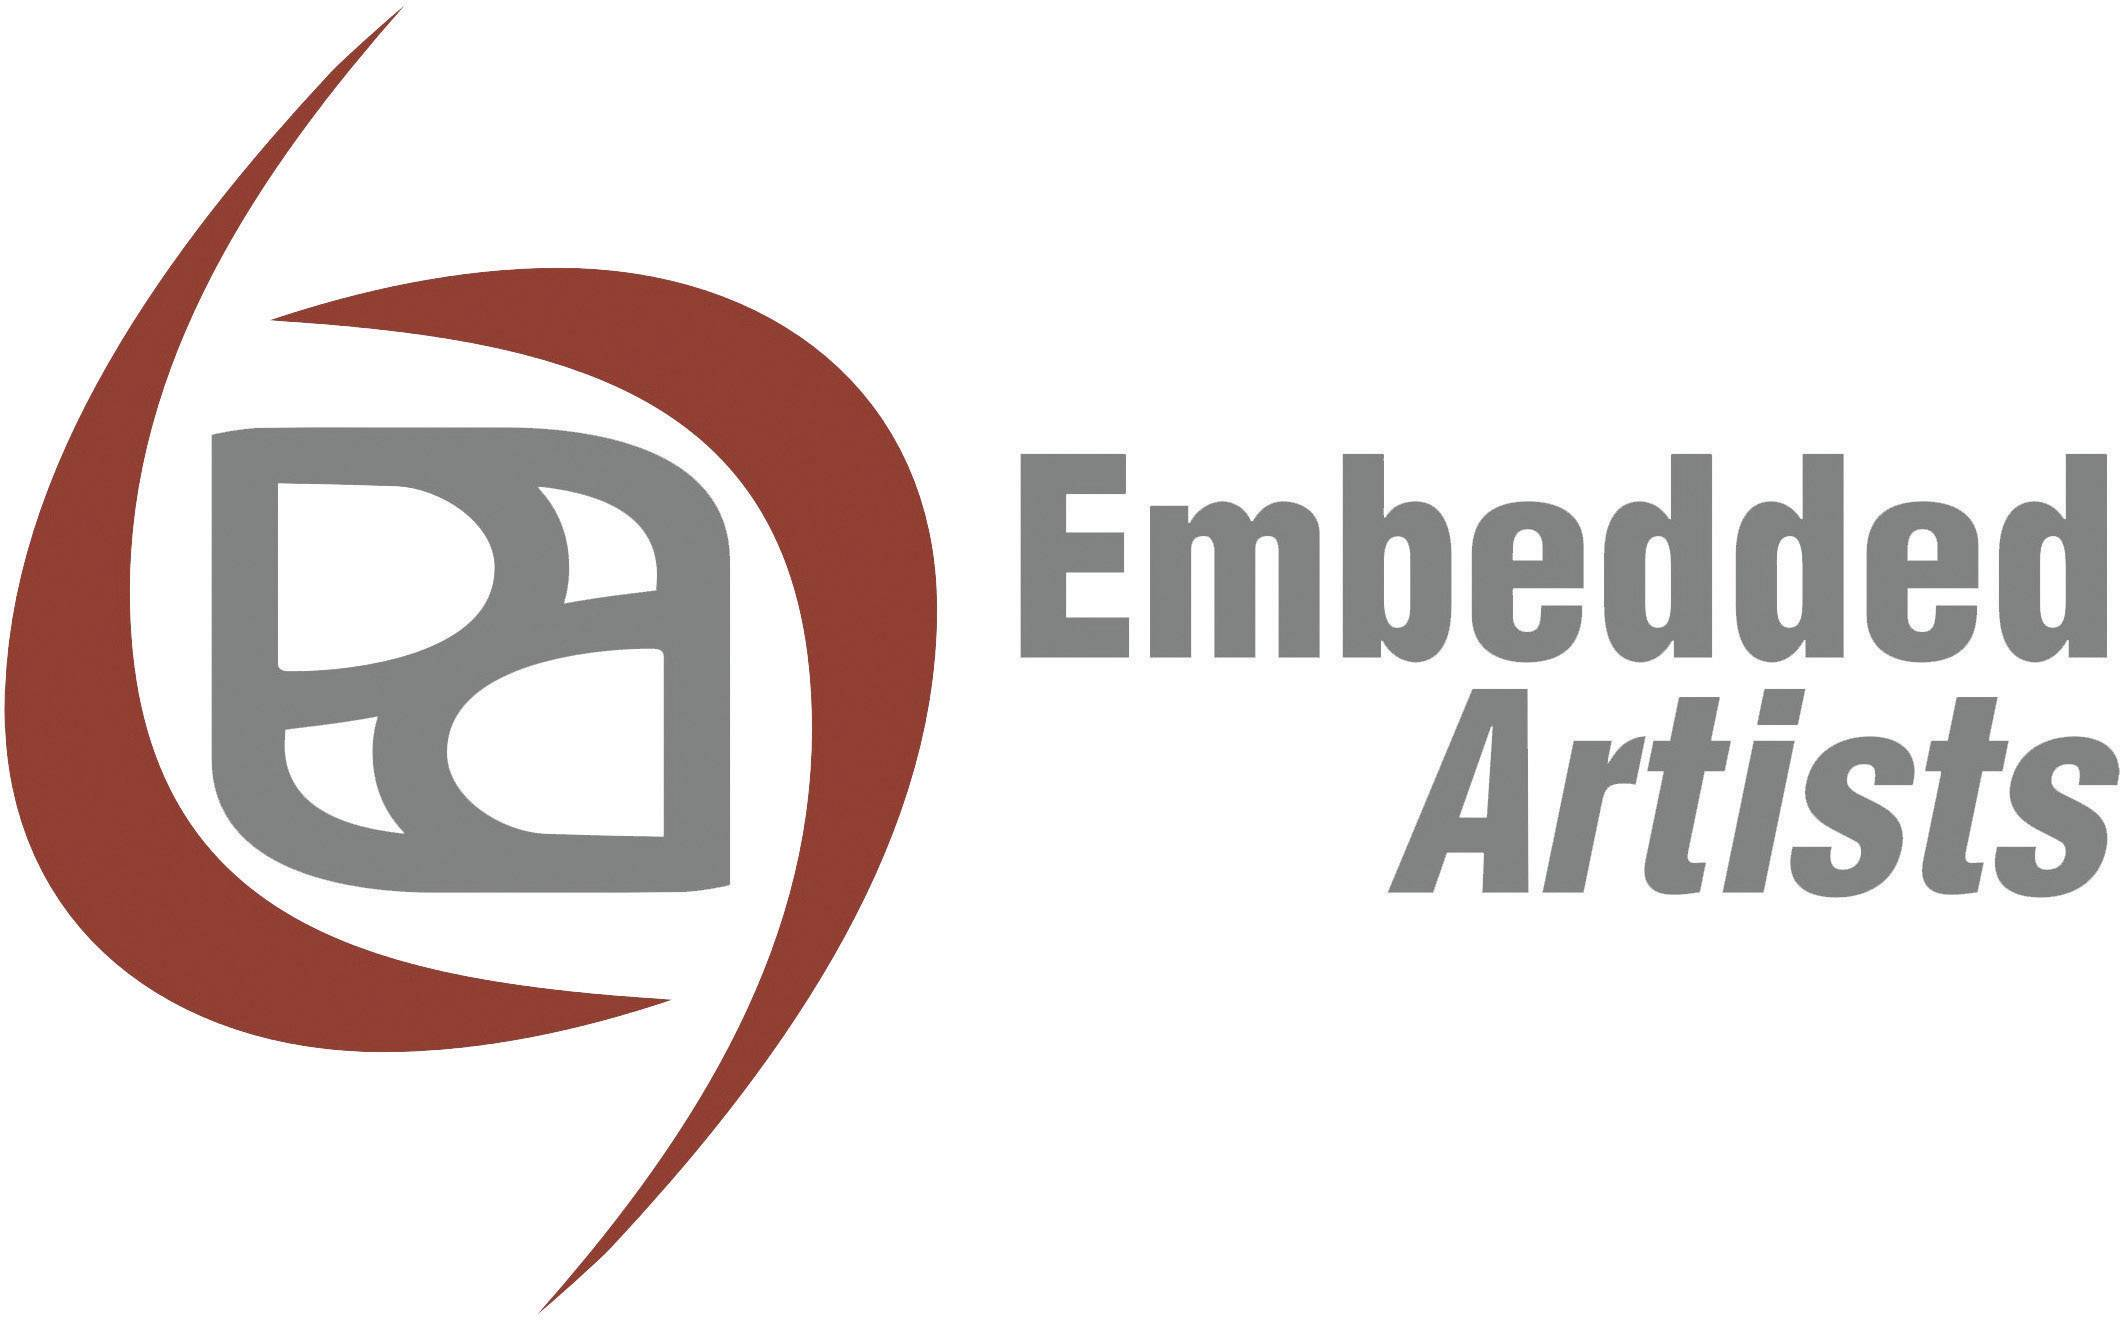 Embedded Artists